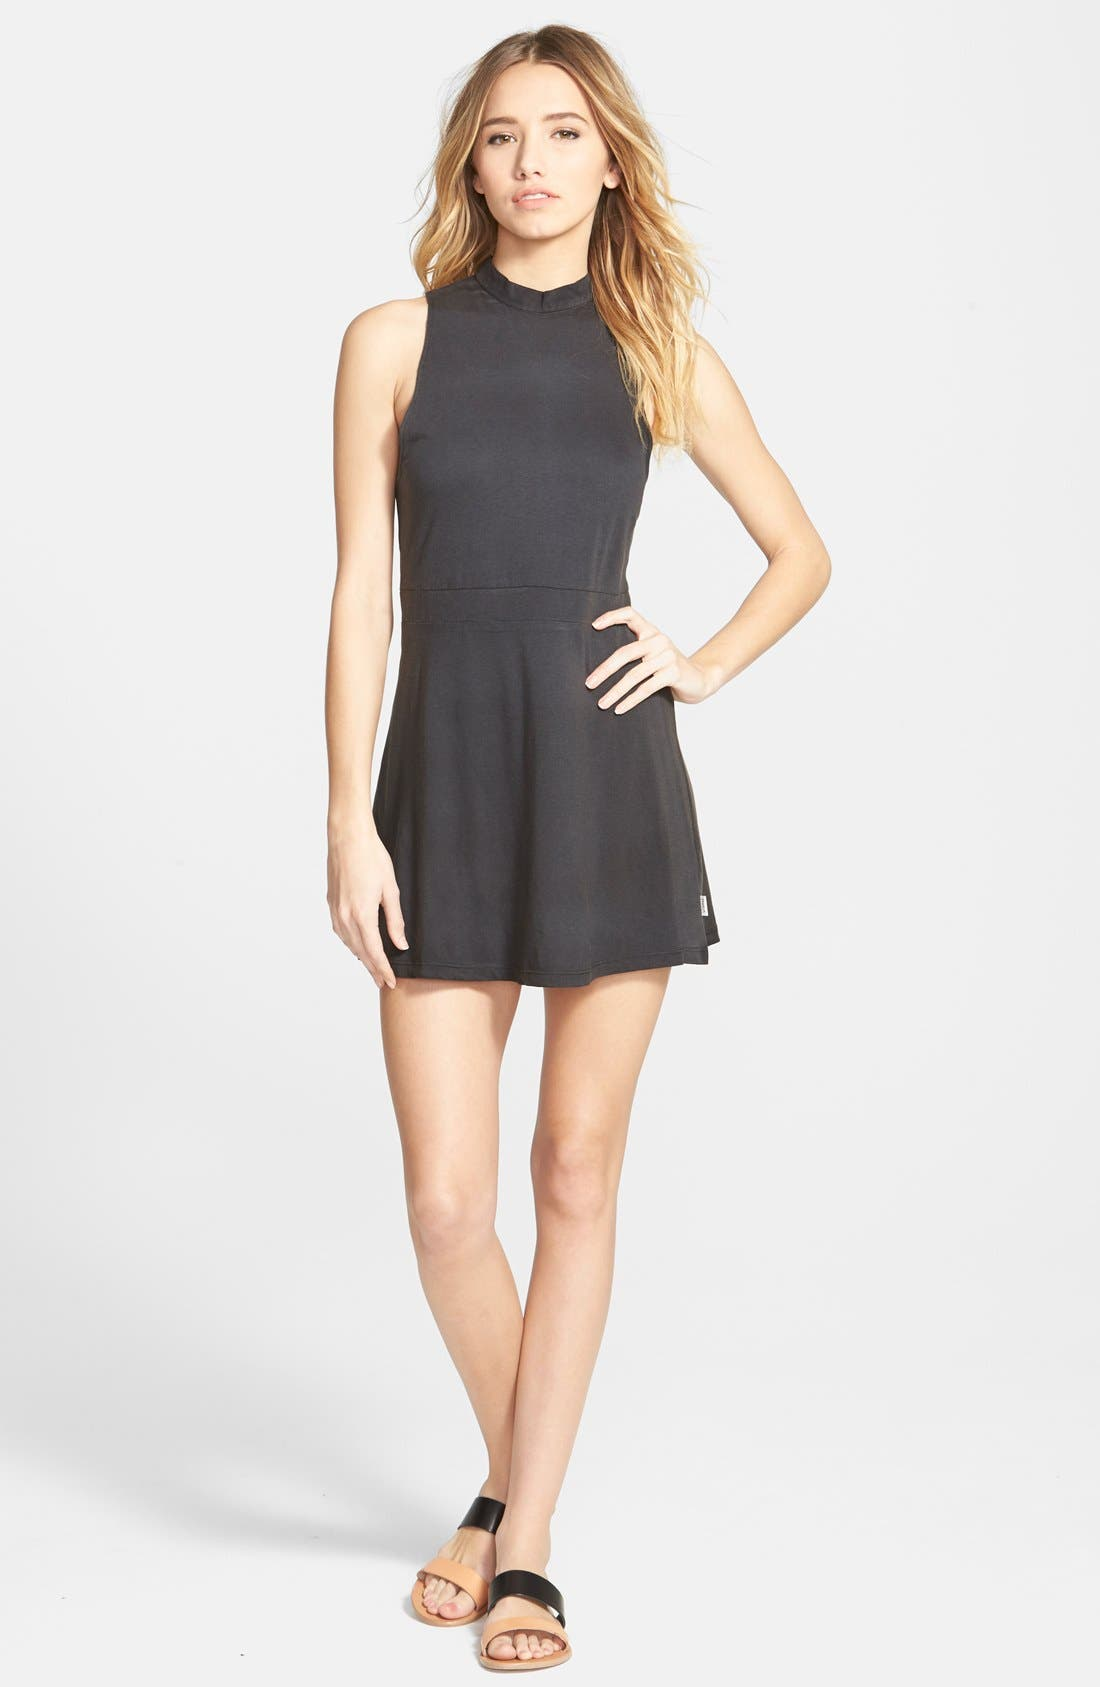 Alternate Image 1 Selected - RVCA 'Early Brunch' Cotton Skater Dress